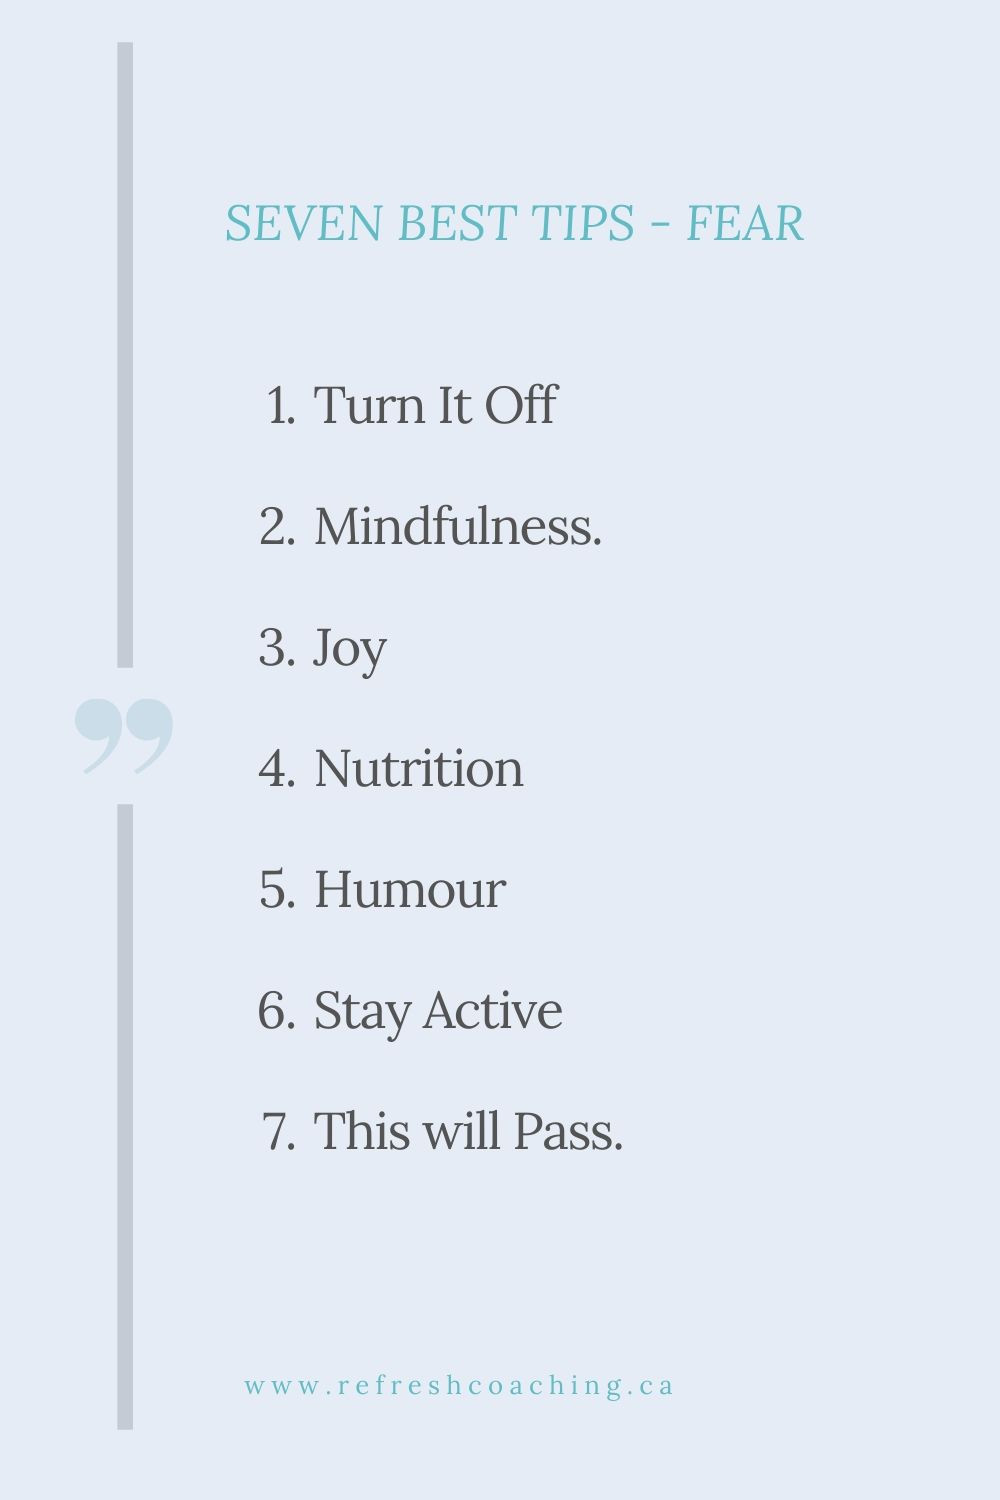 Seven best tip tips to manage fear and stay well